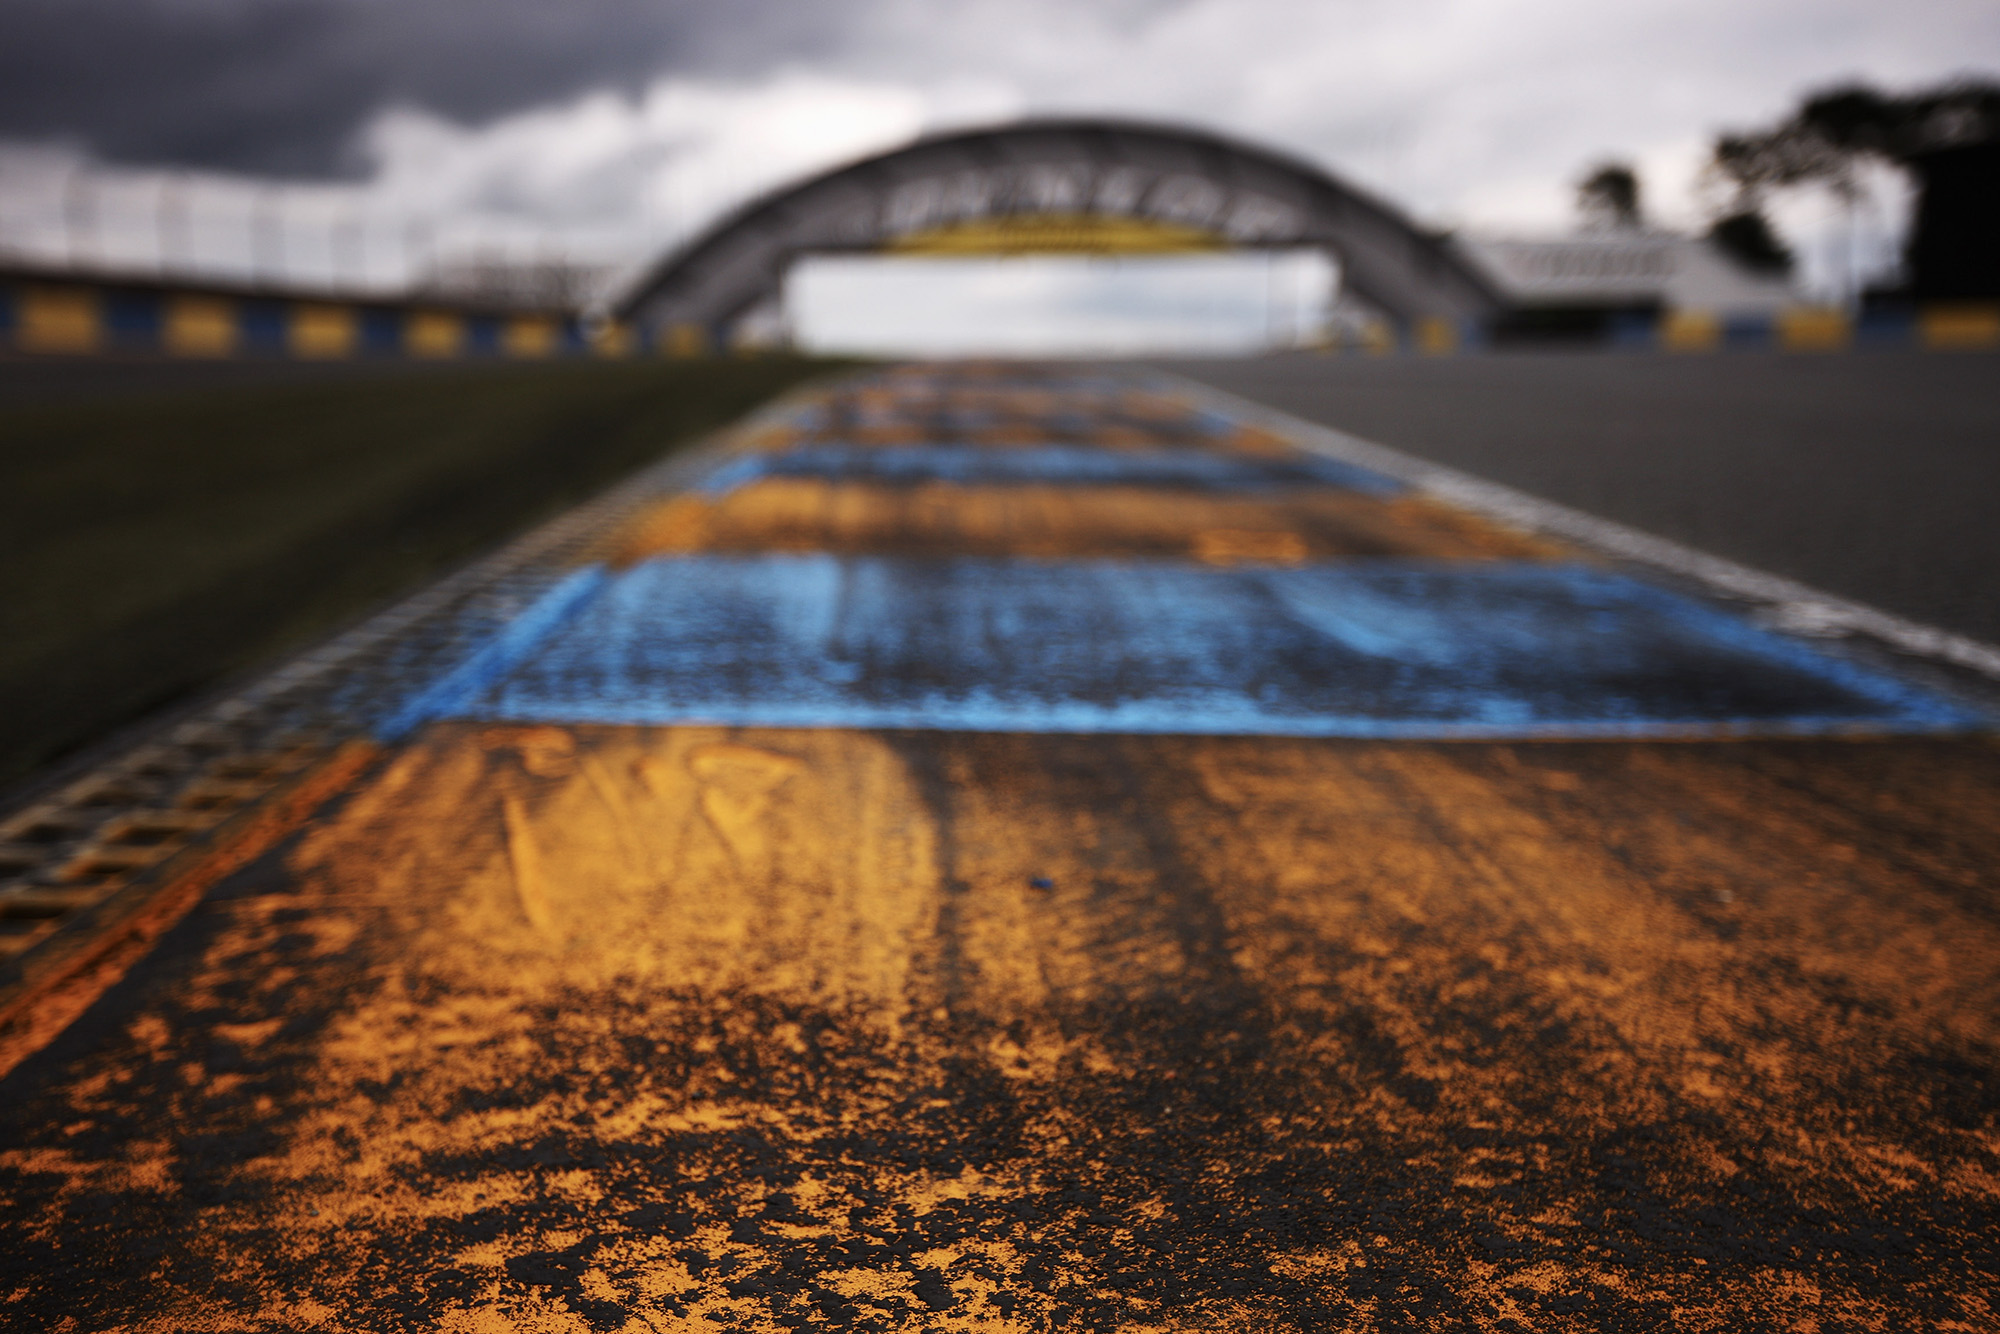 Empty Le Mans track with Dunlop Bridge in the background